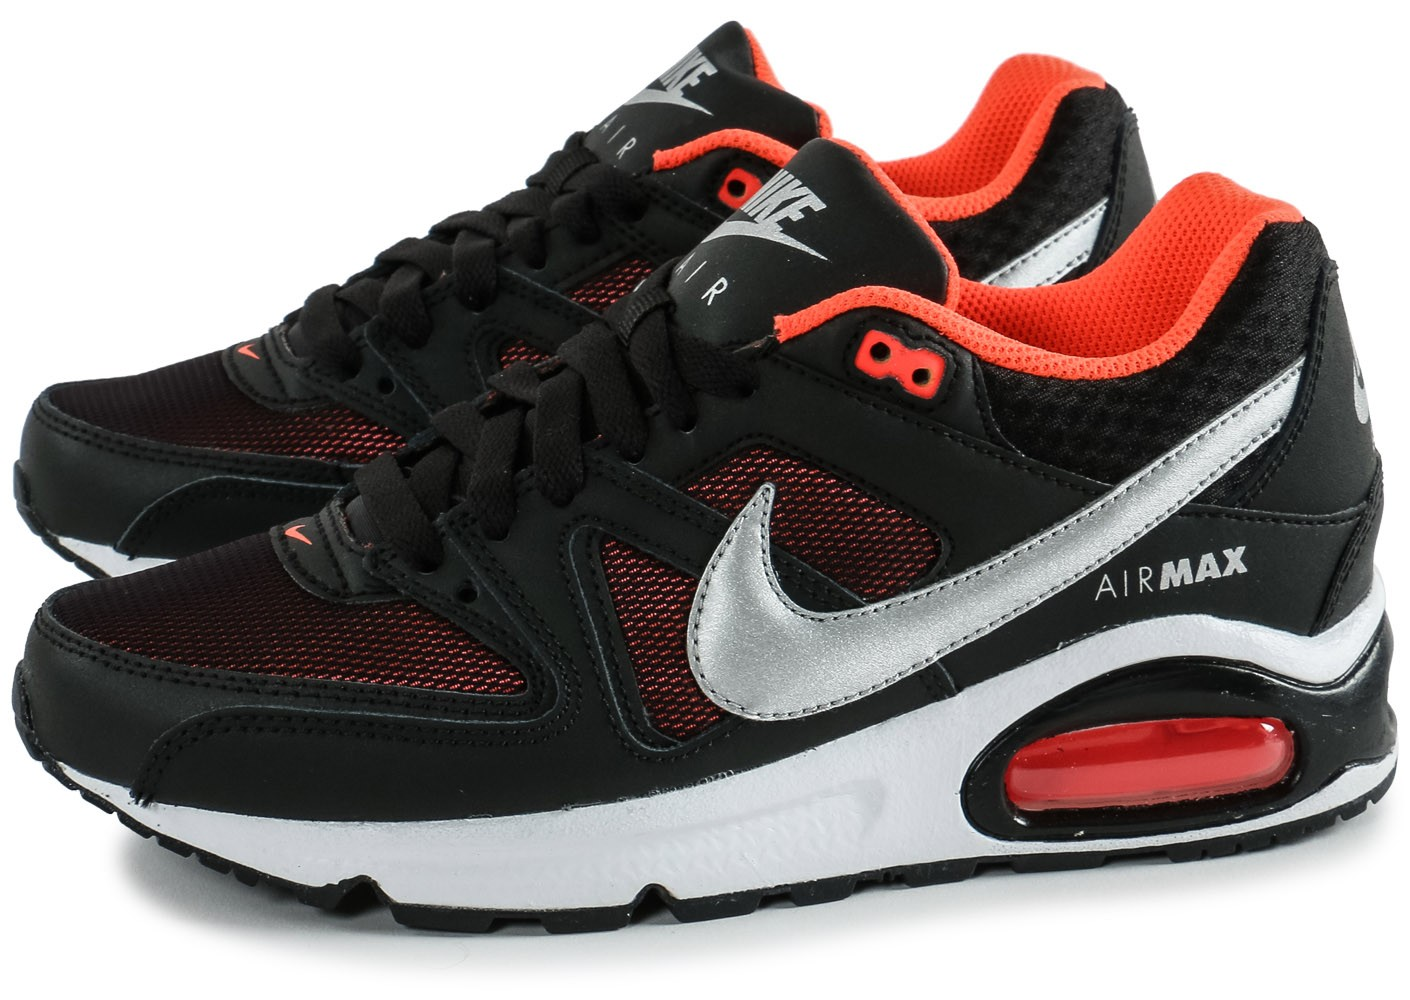 online retailer 81db7 3908c Acheter Nike Air Max Command Femme Chaussures JDcommand28